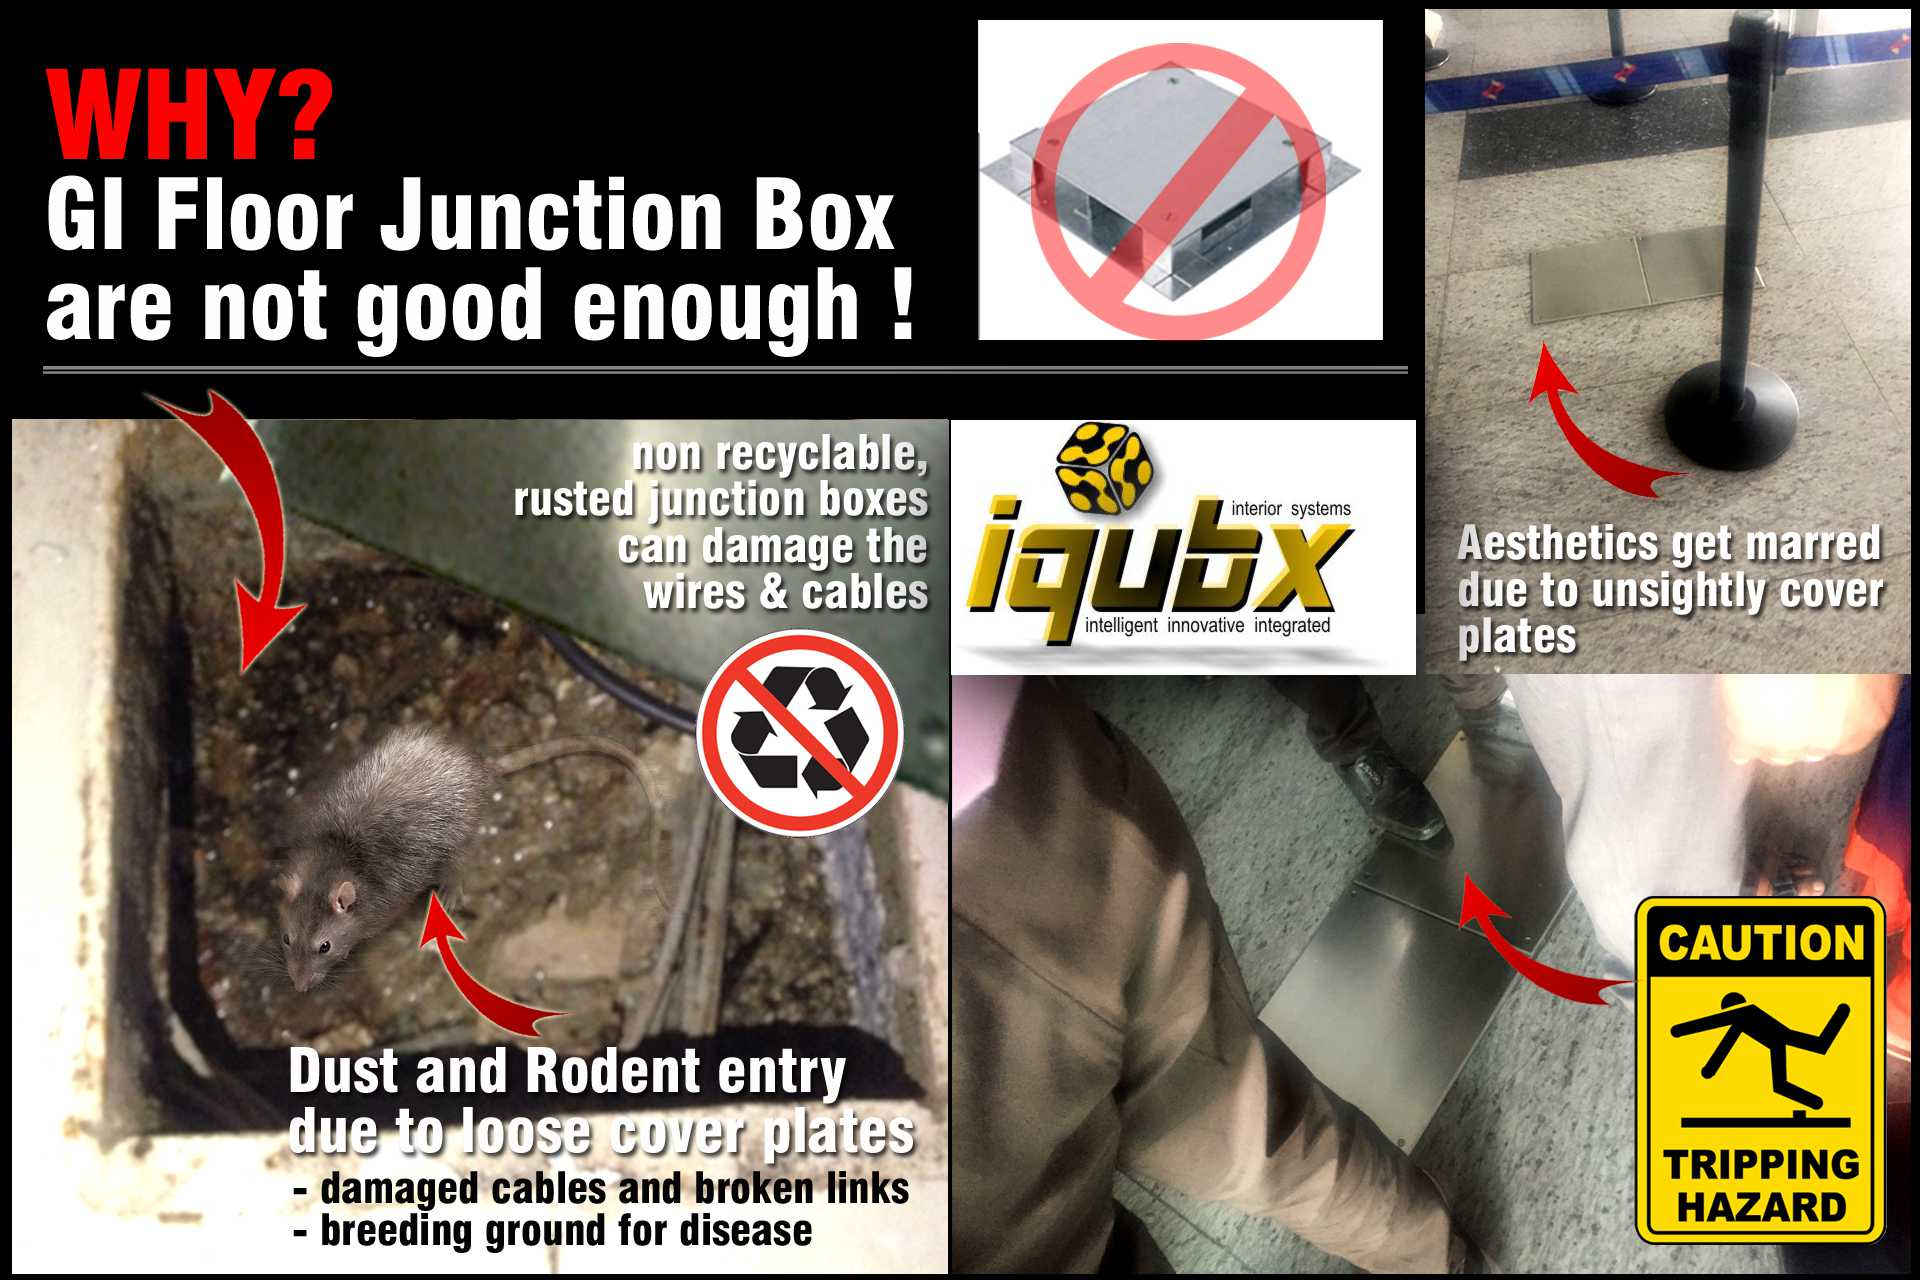 Problems with GI floor Junction Boxes - cover plates come loose allowing rodent and dust entry, can cause accidents, looks ugly